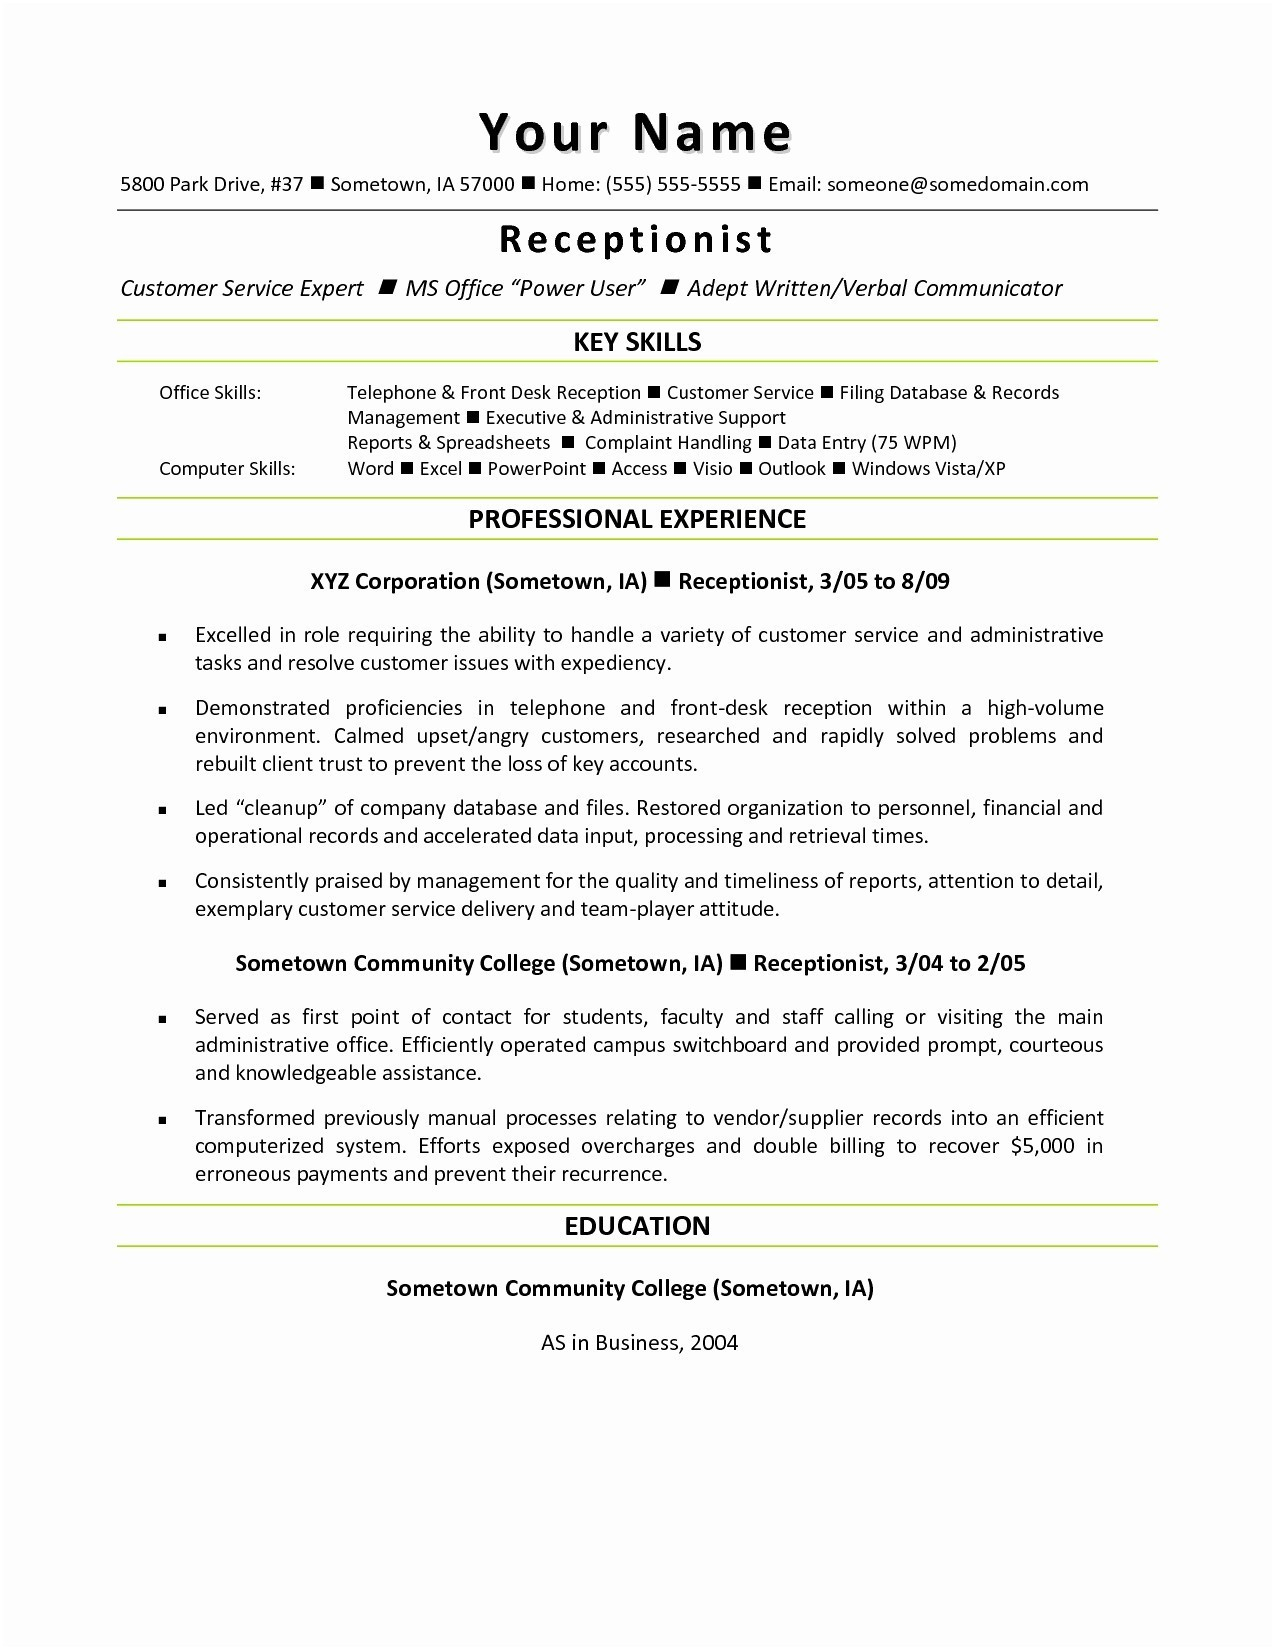 Application Letter Template Word - Resume Microsoft Word Fresh Resume Mail format Sample Fresh